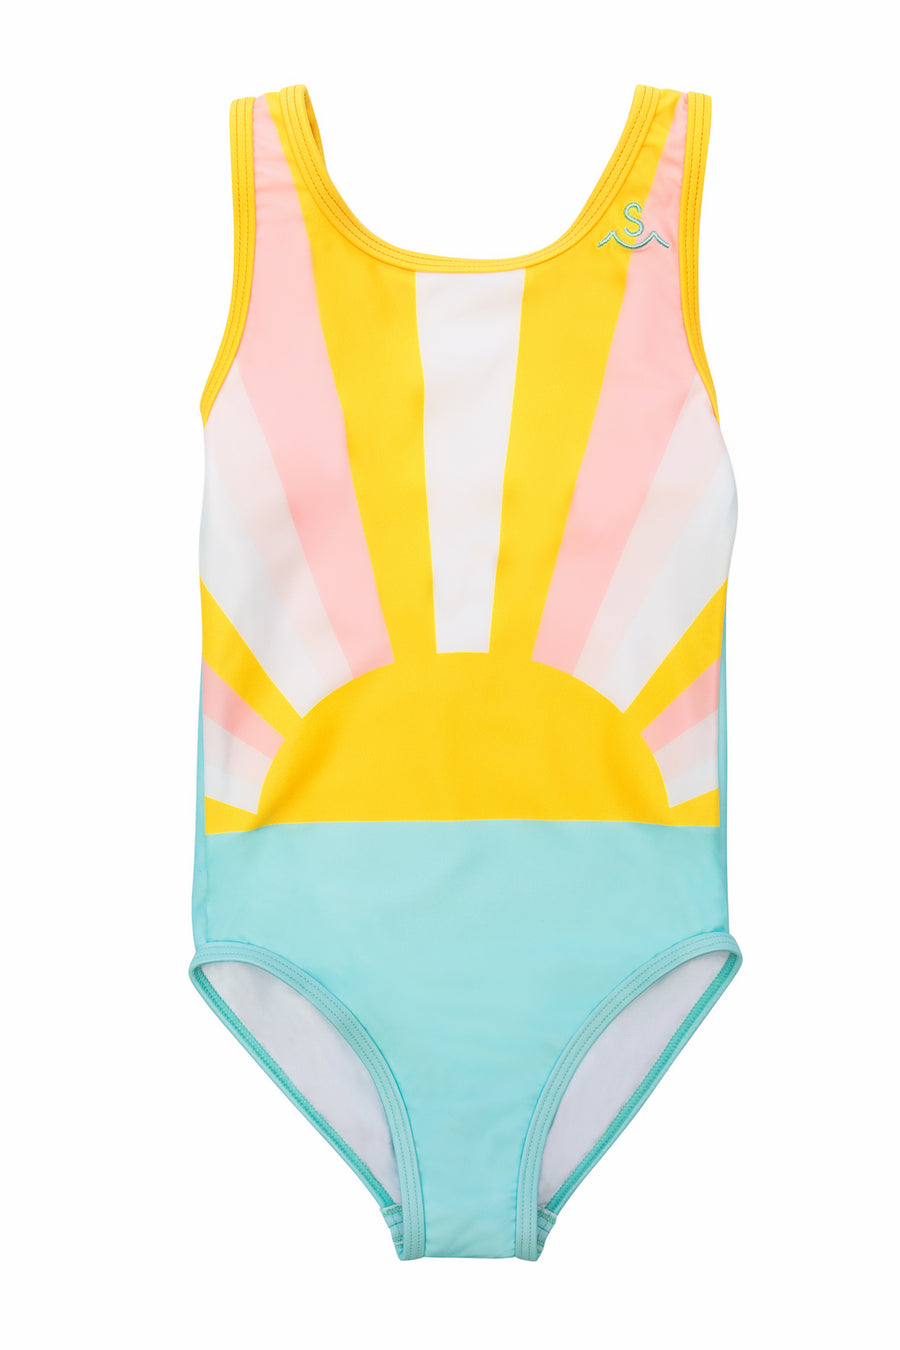 Seaesta Surf x Tiny Whales Sun Child Swimsuit